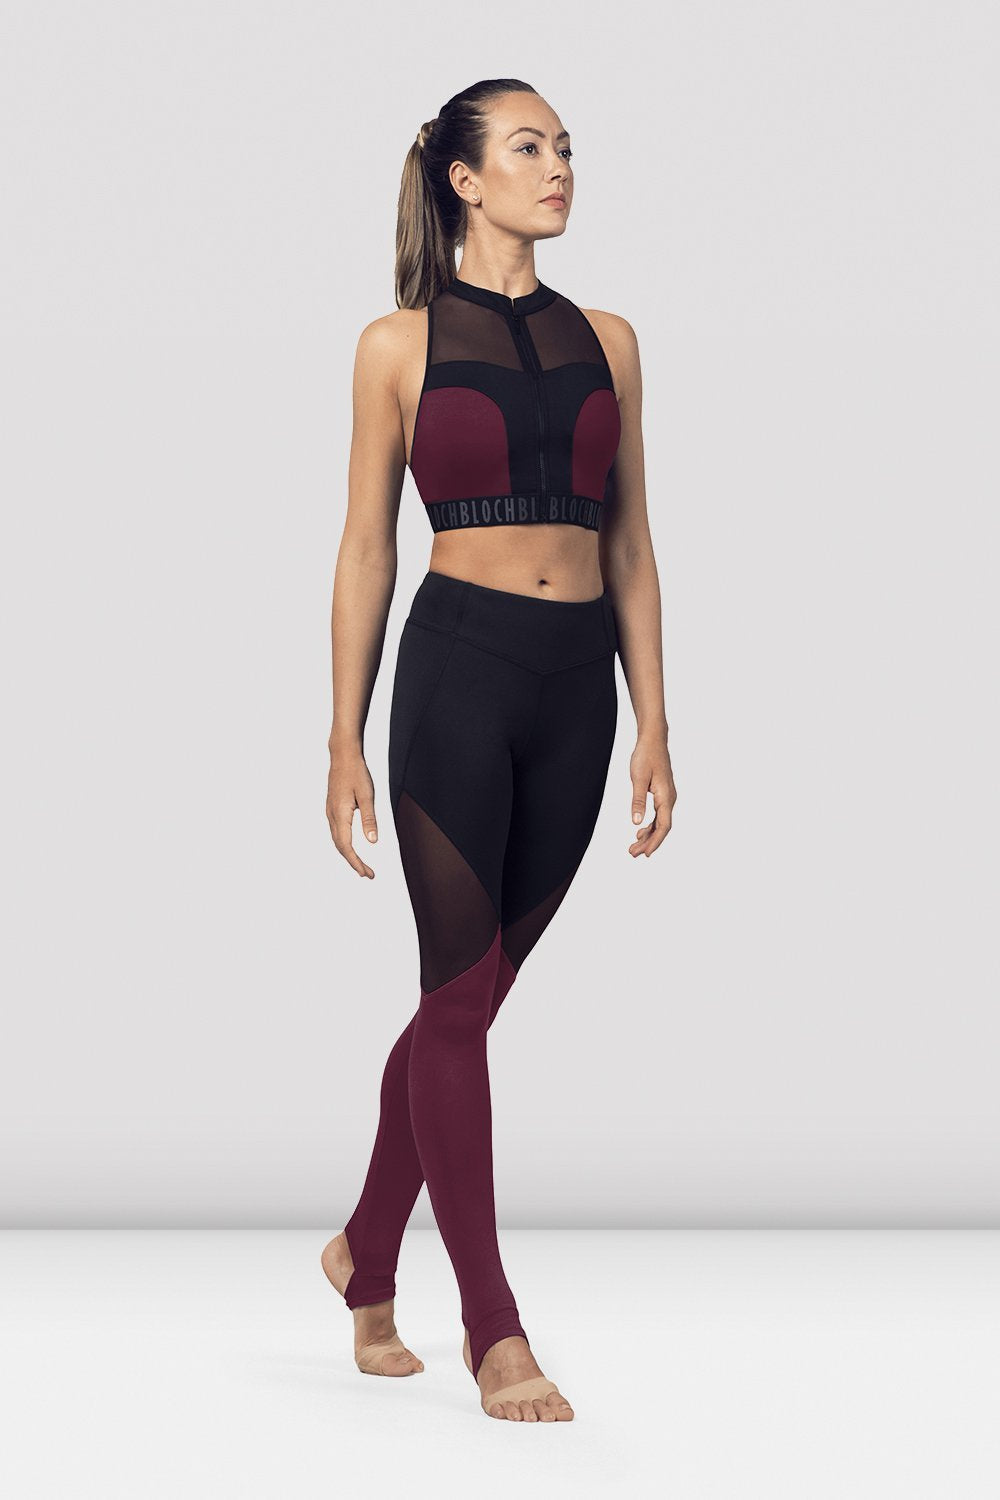 Dewberry Bloch Ladies Full Length Leggings on female model in parallel fourth position on releve facing corner